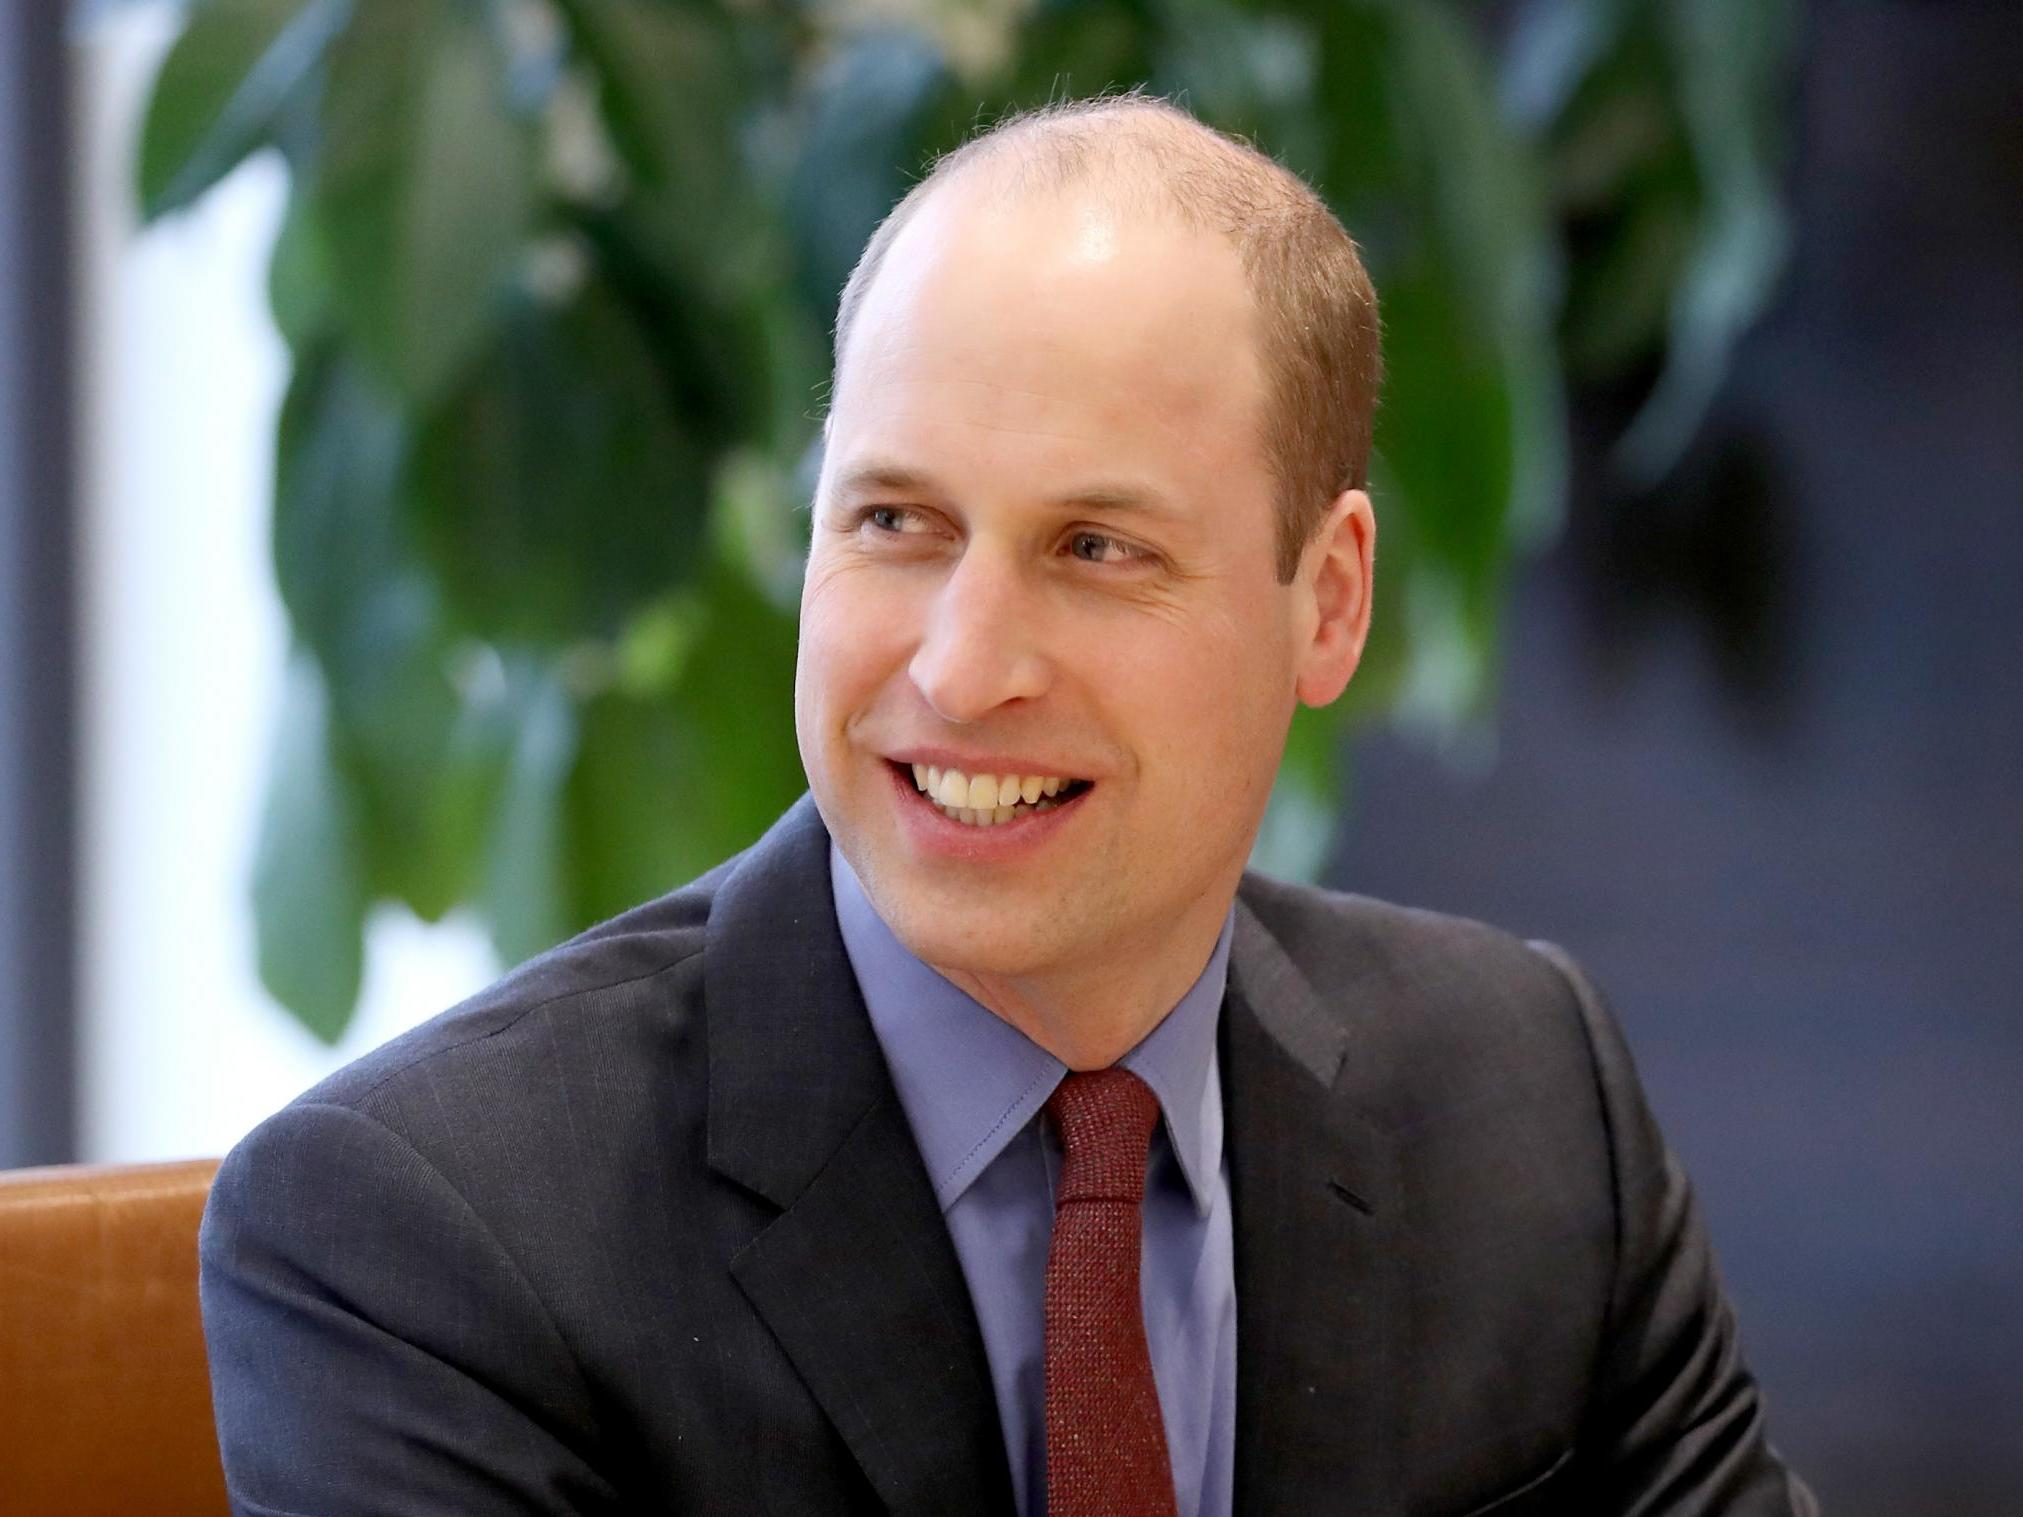 Prince William records mental health message for national church service